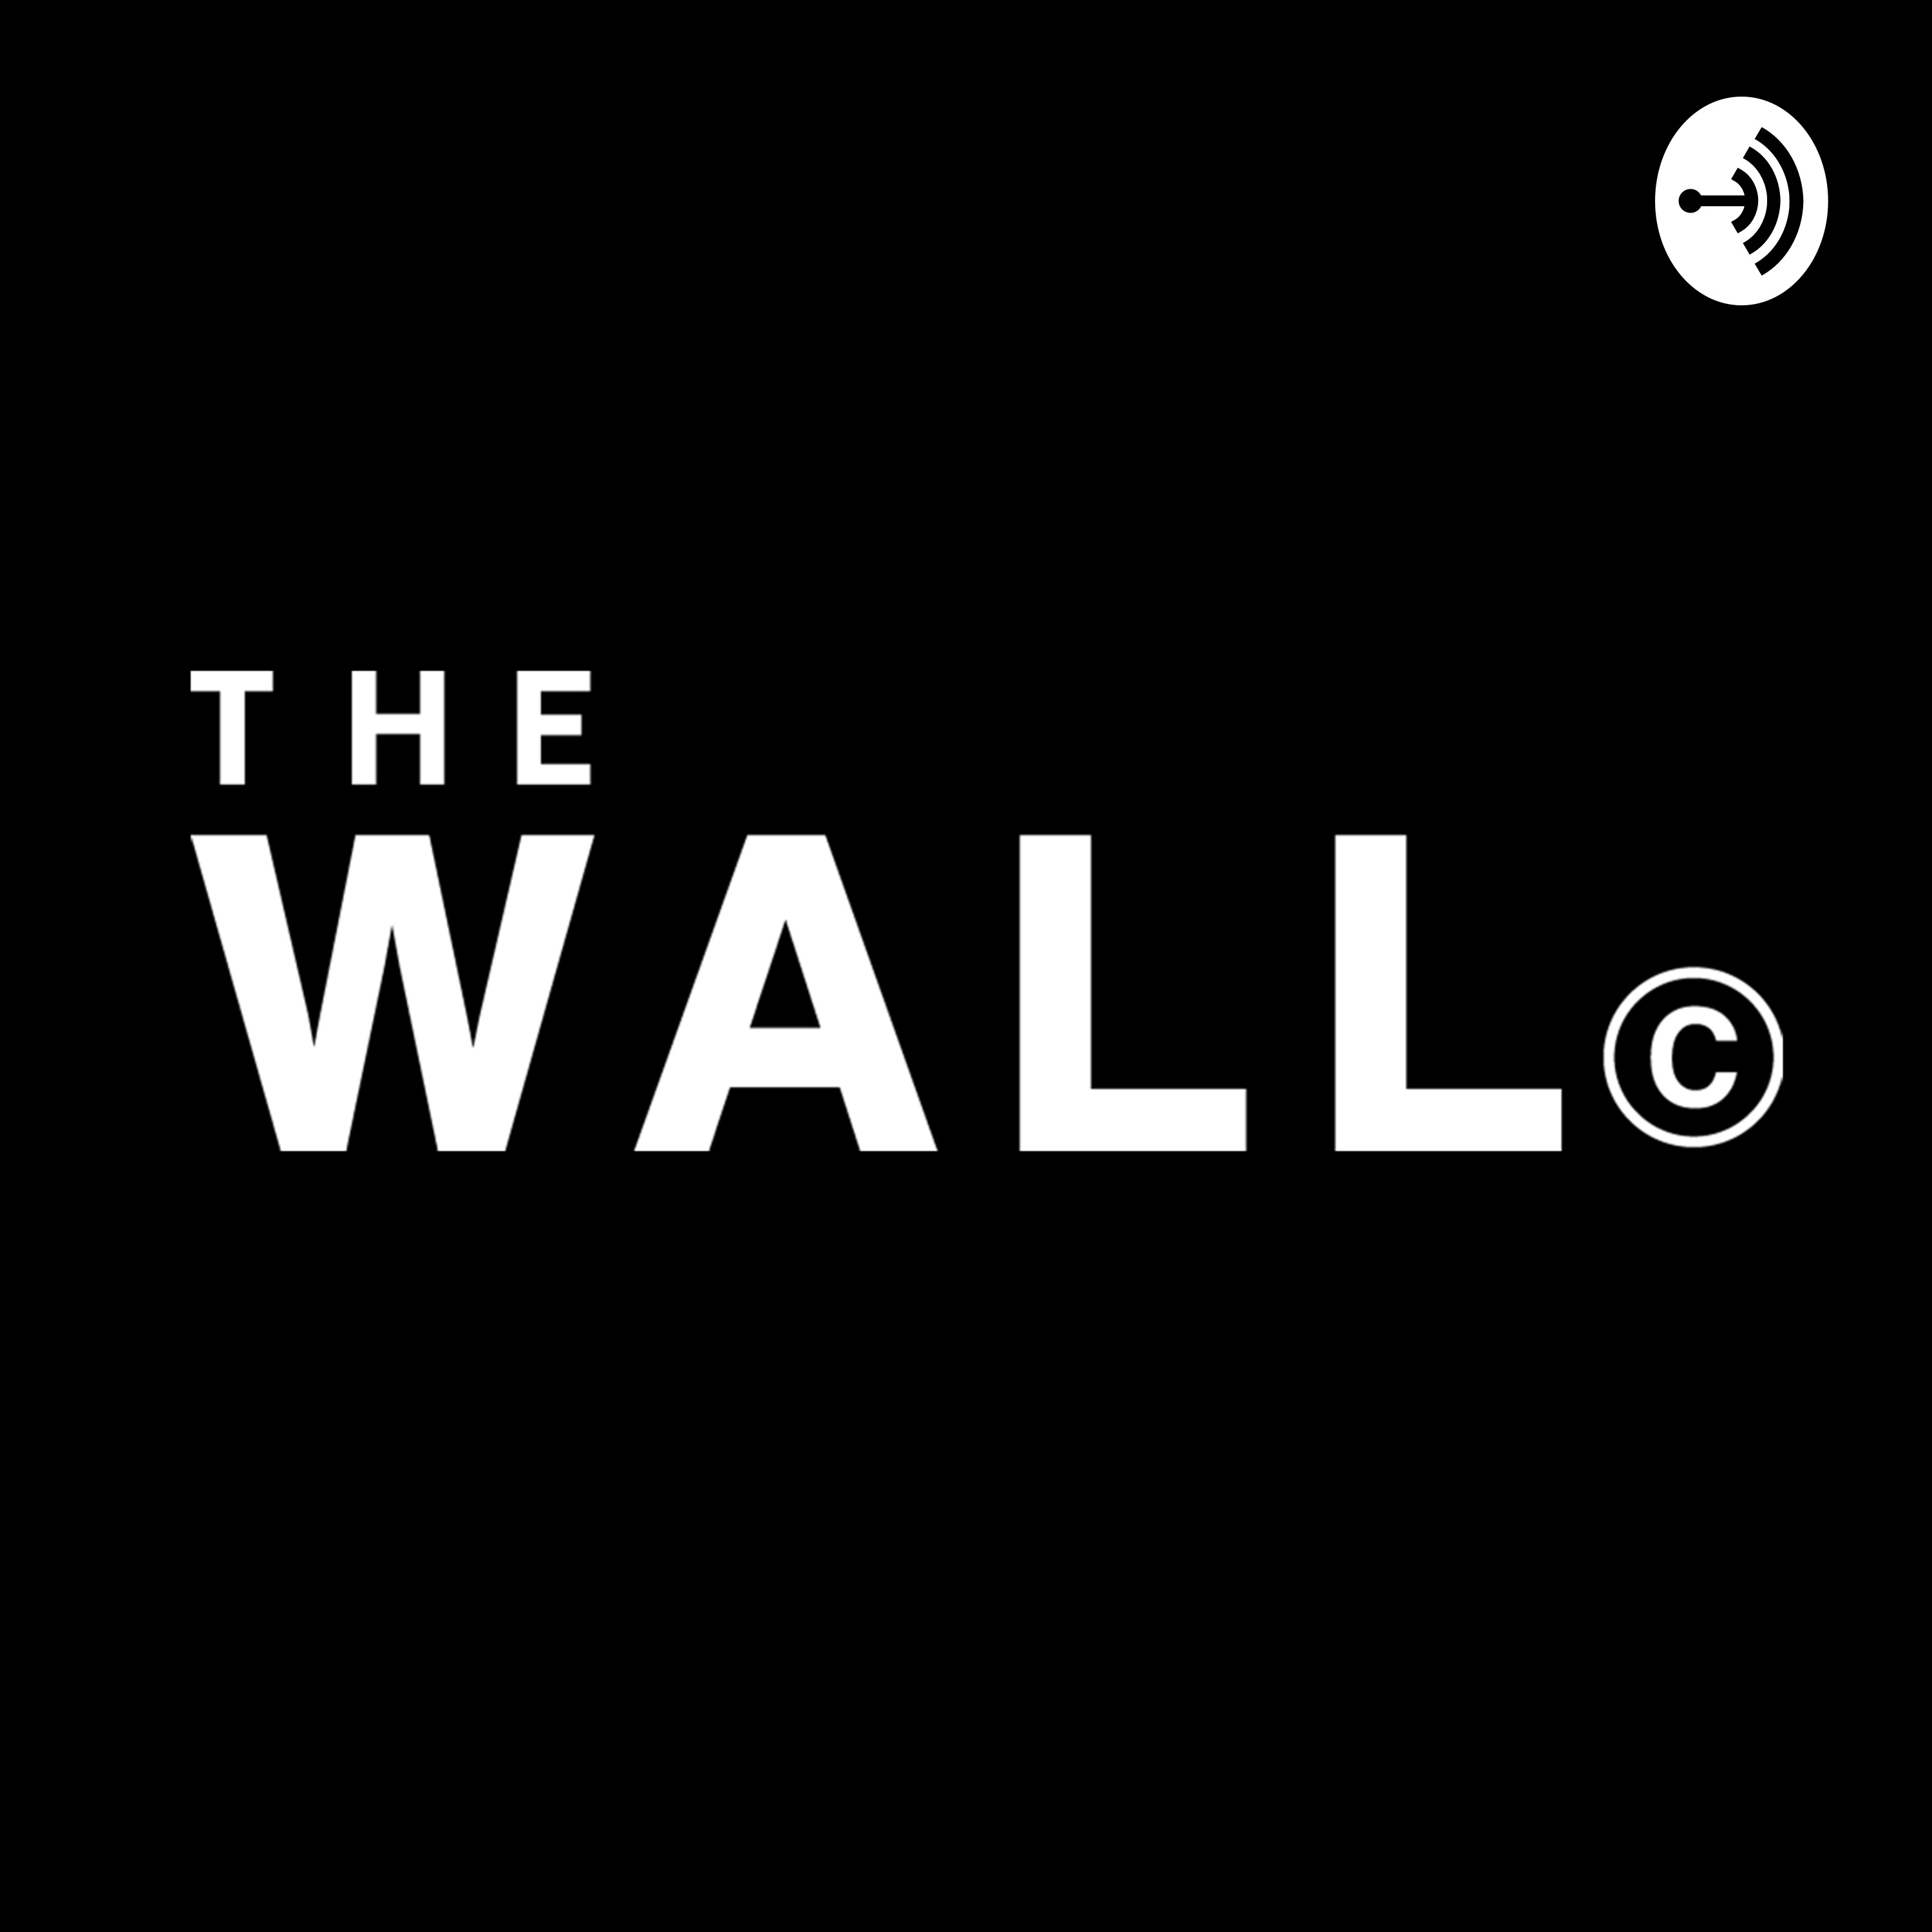 Phase 2 | 2020 The Wall Fitness Group fitness program